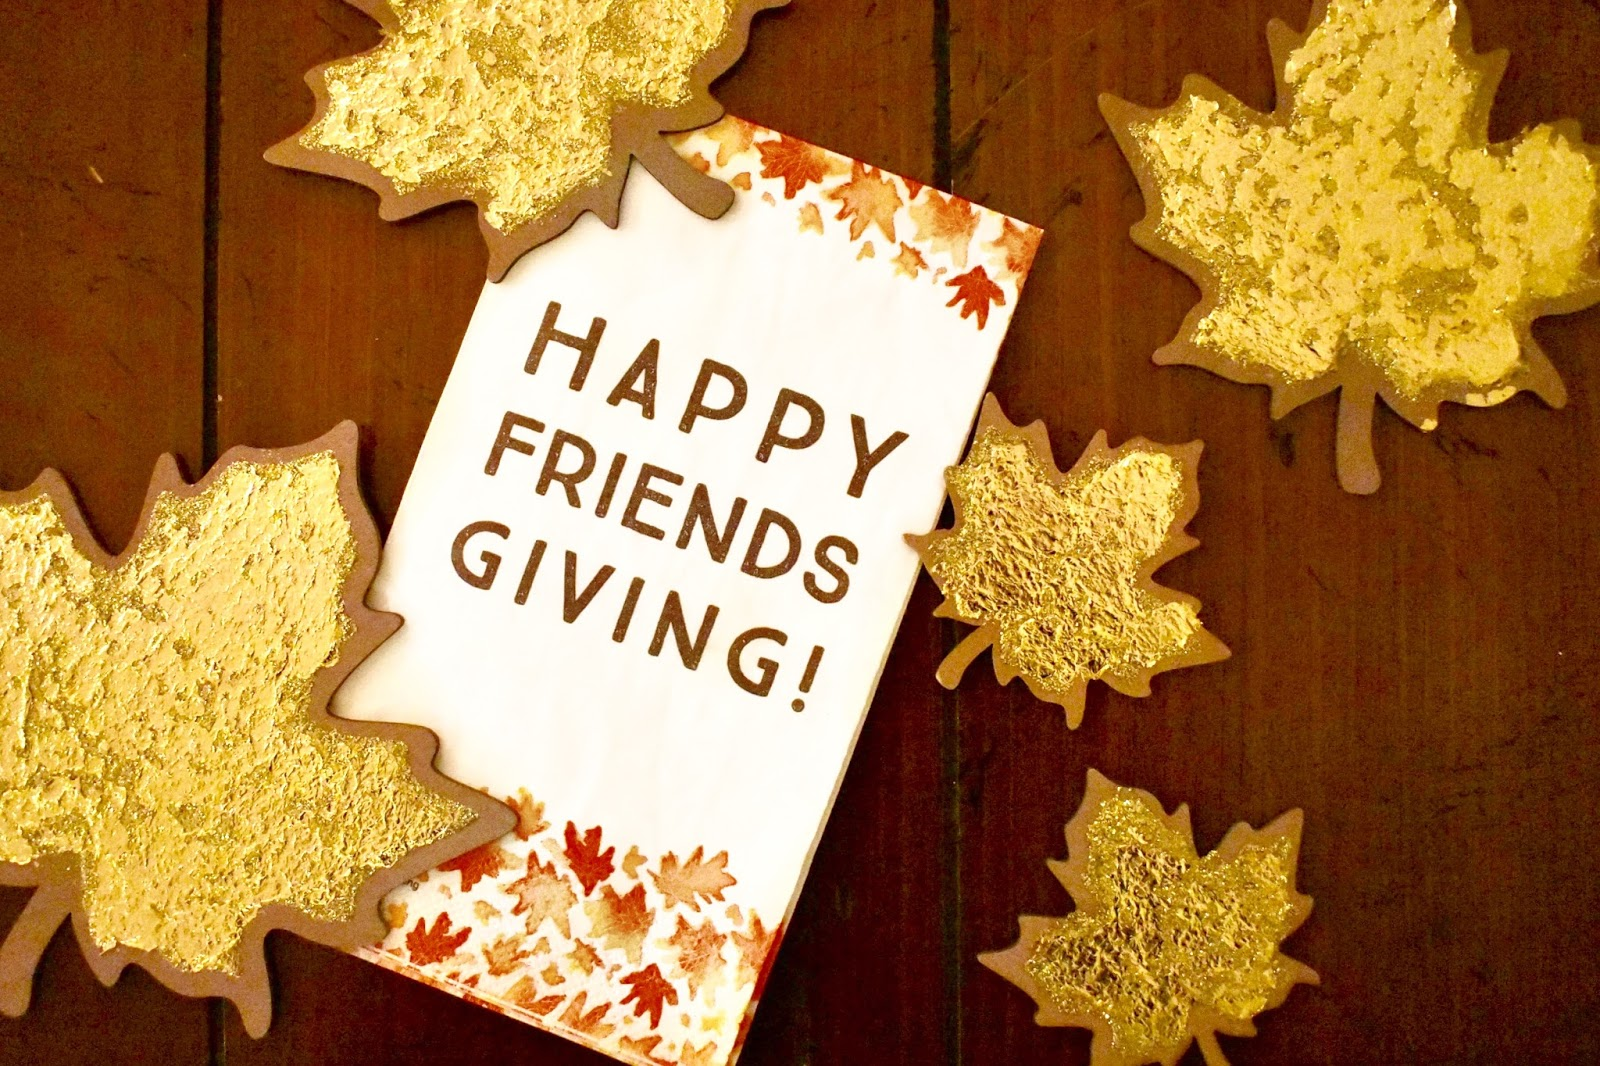 Want to Host a Stress-Free Friendsgiving? Use these Helpful Tips & Reminders (+ Checklist)